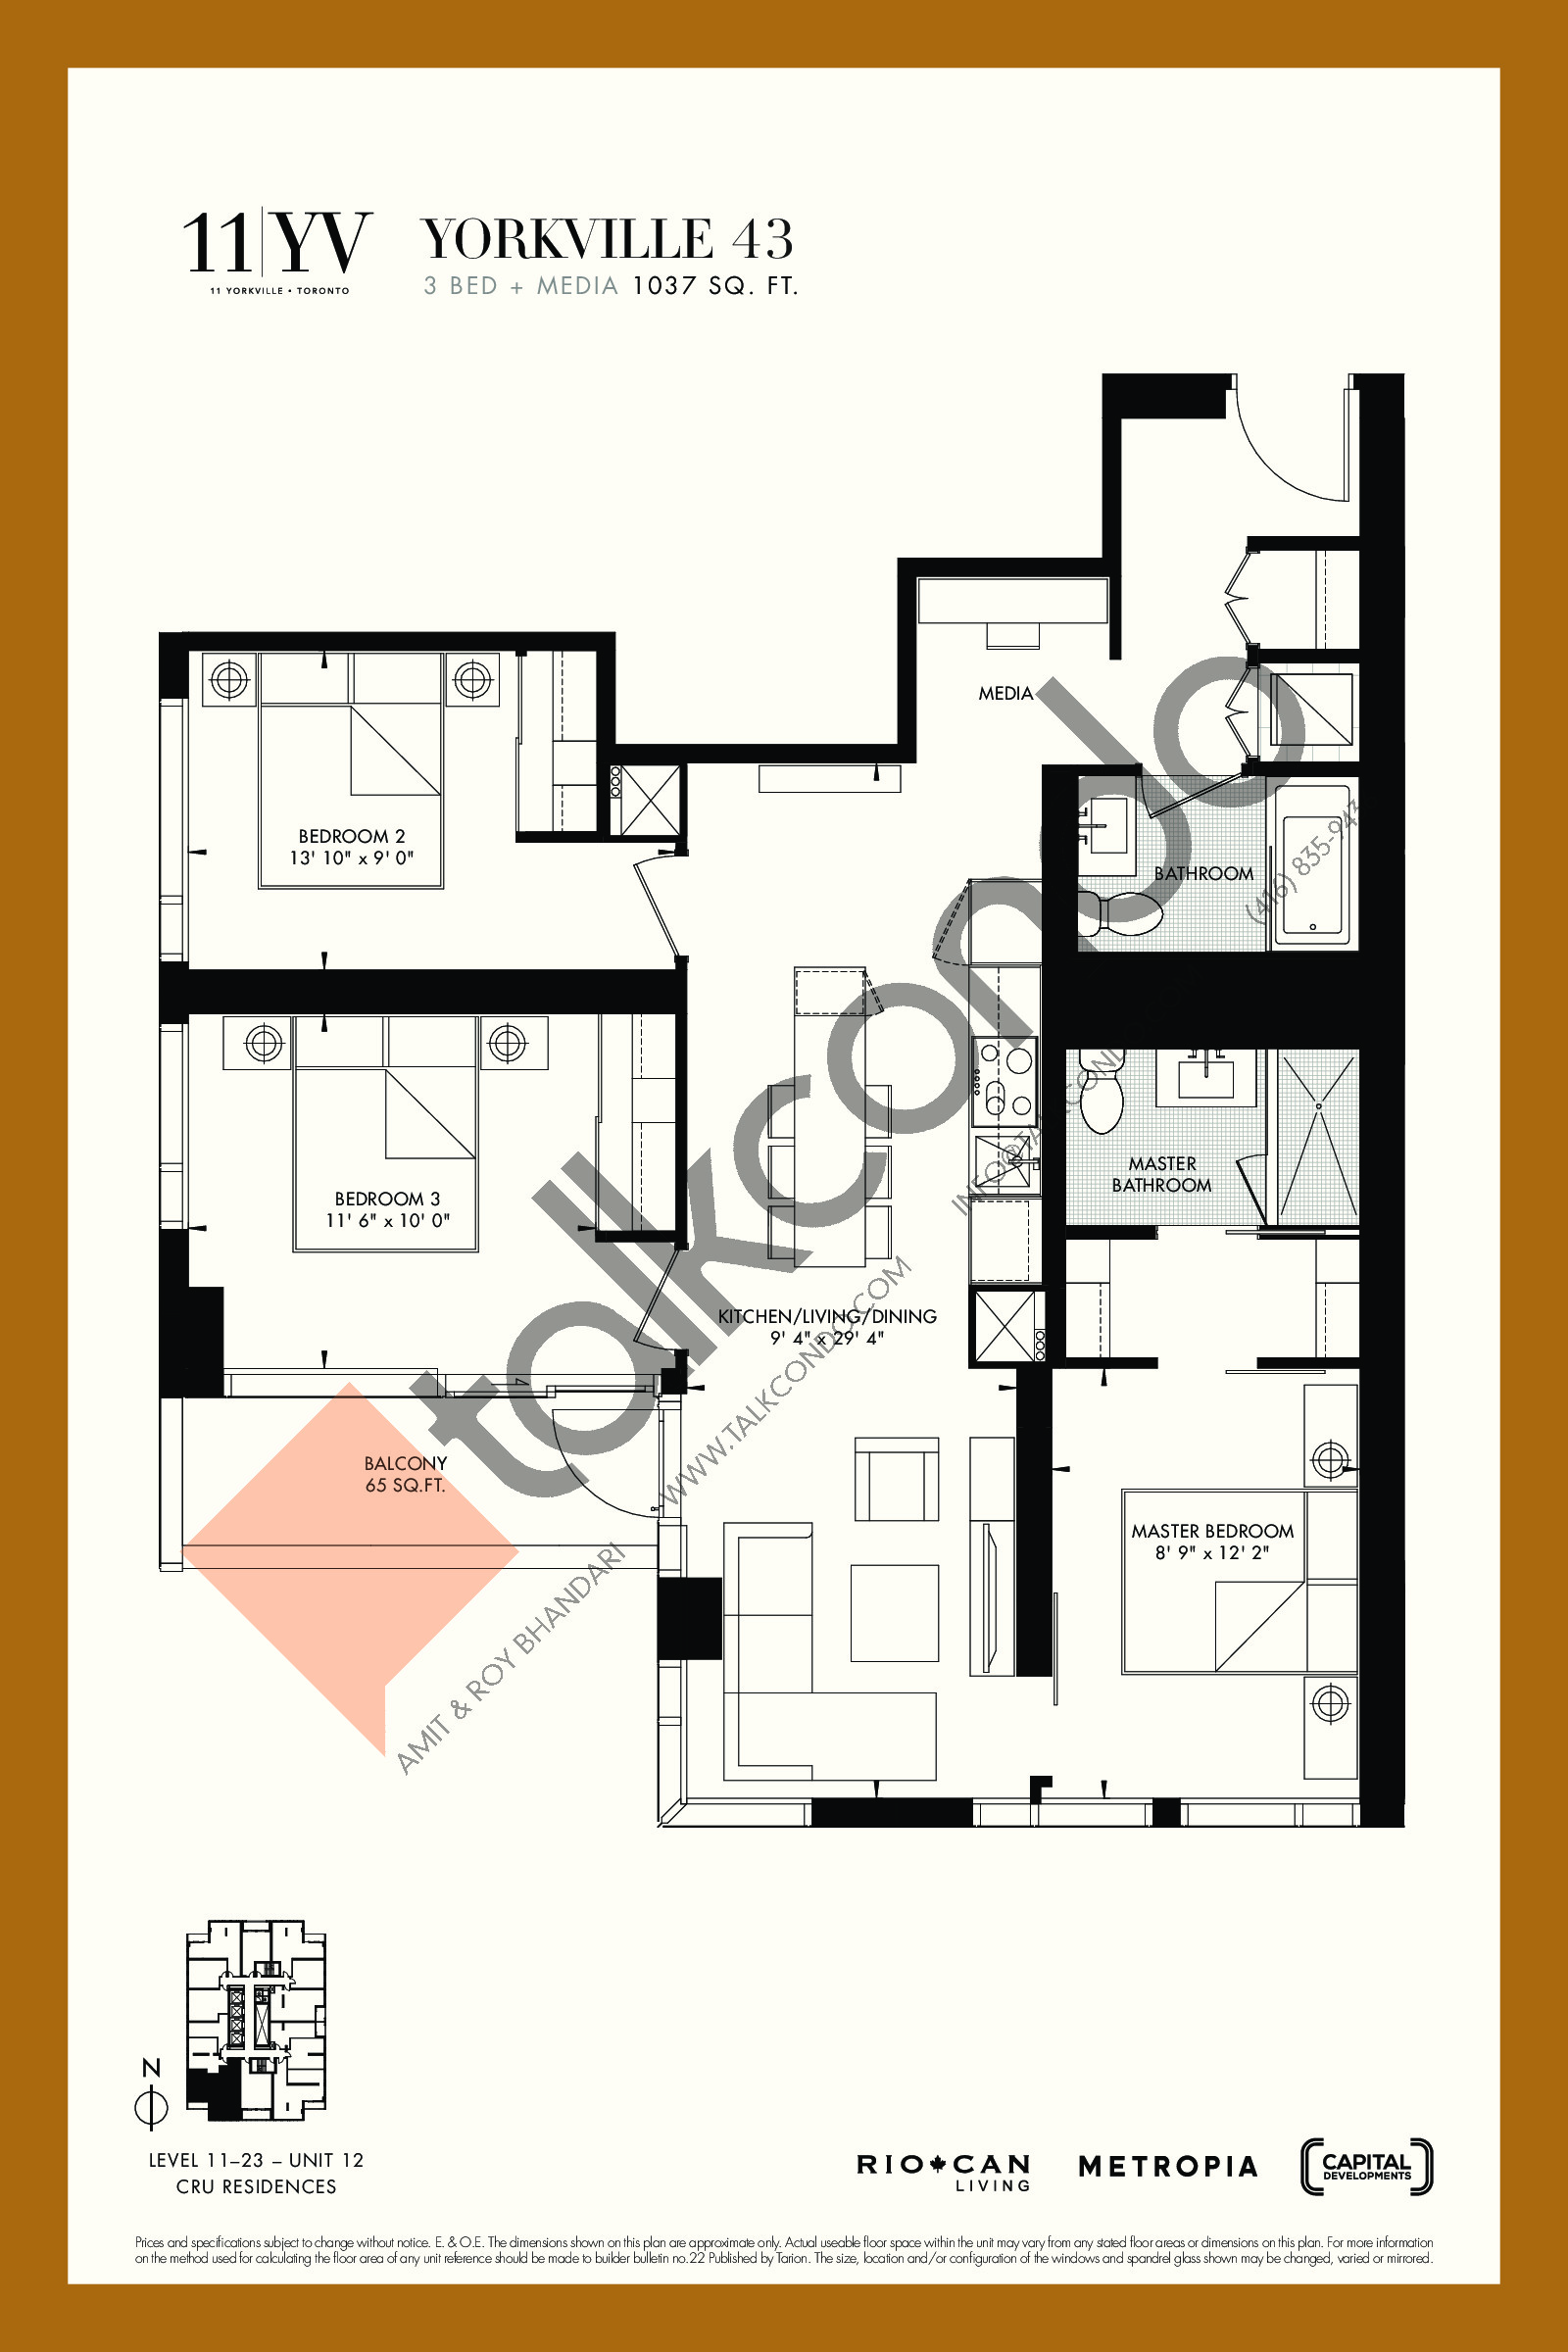 Yorkville 43 Floor Plan at 11YV Condos - 1037 sq.ft